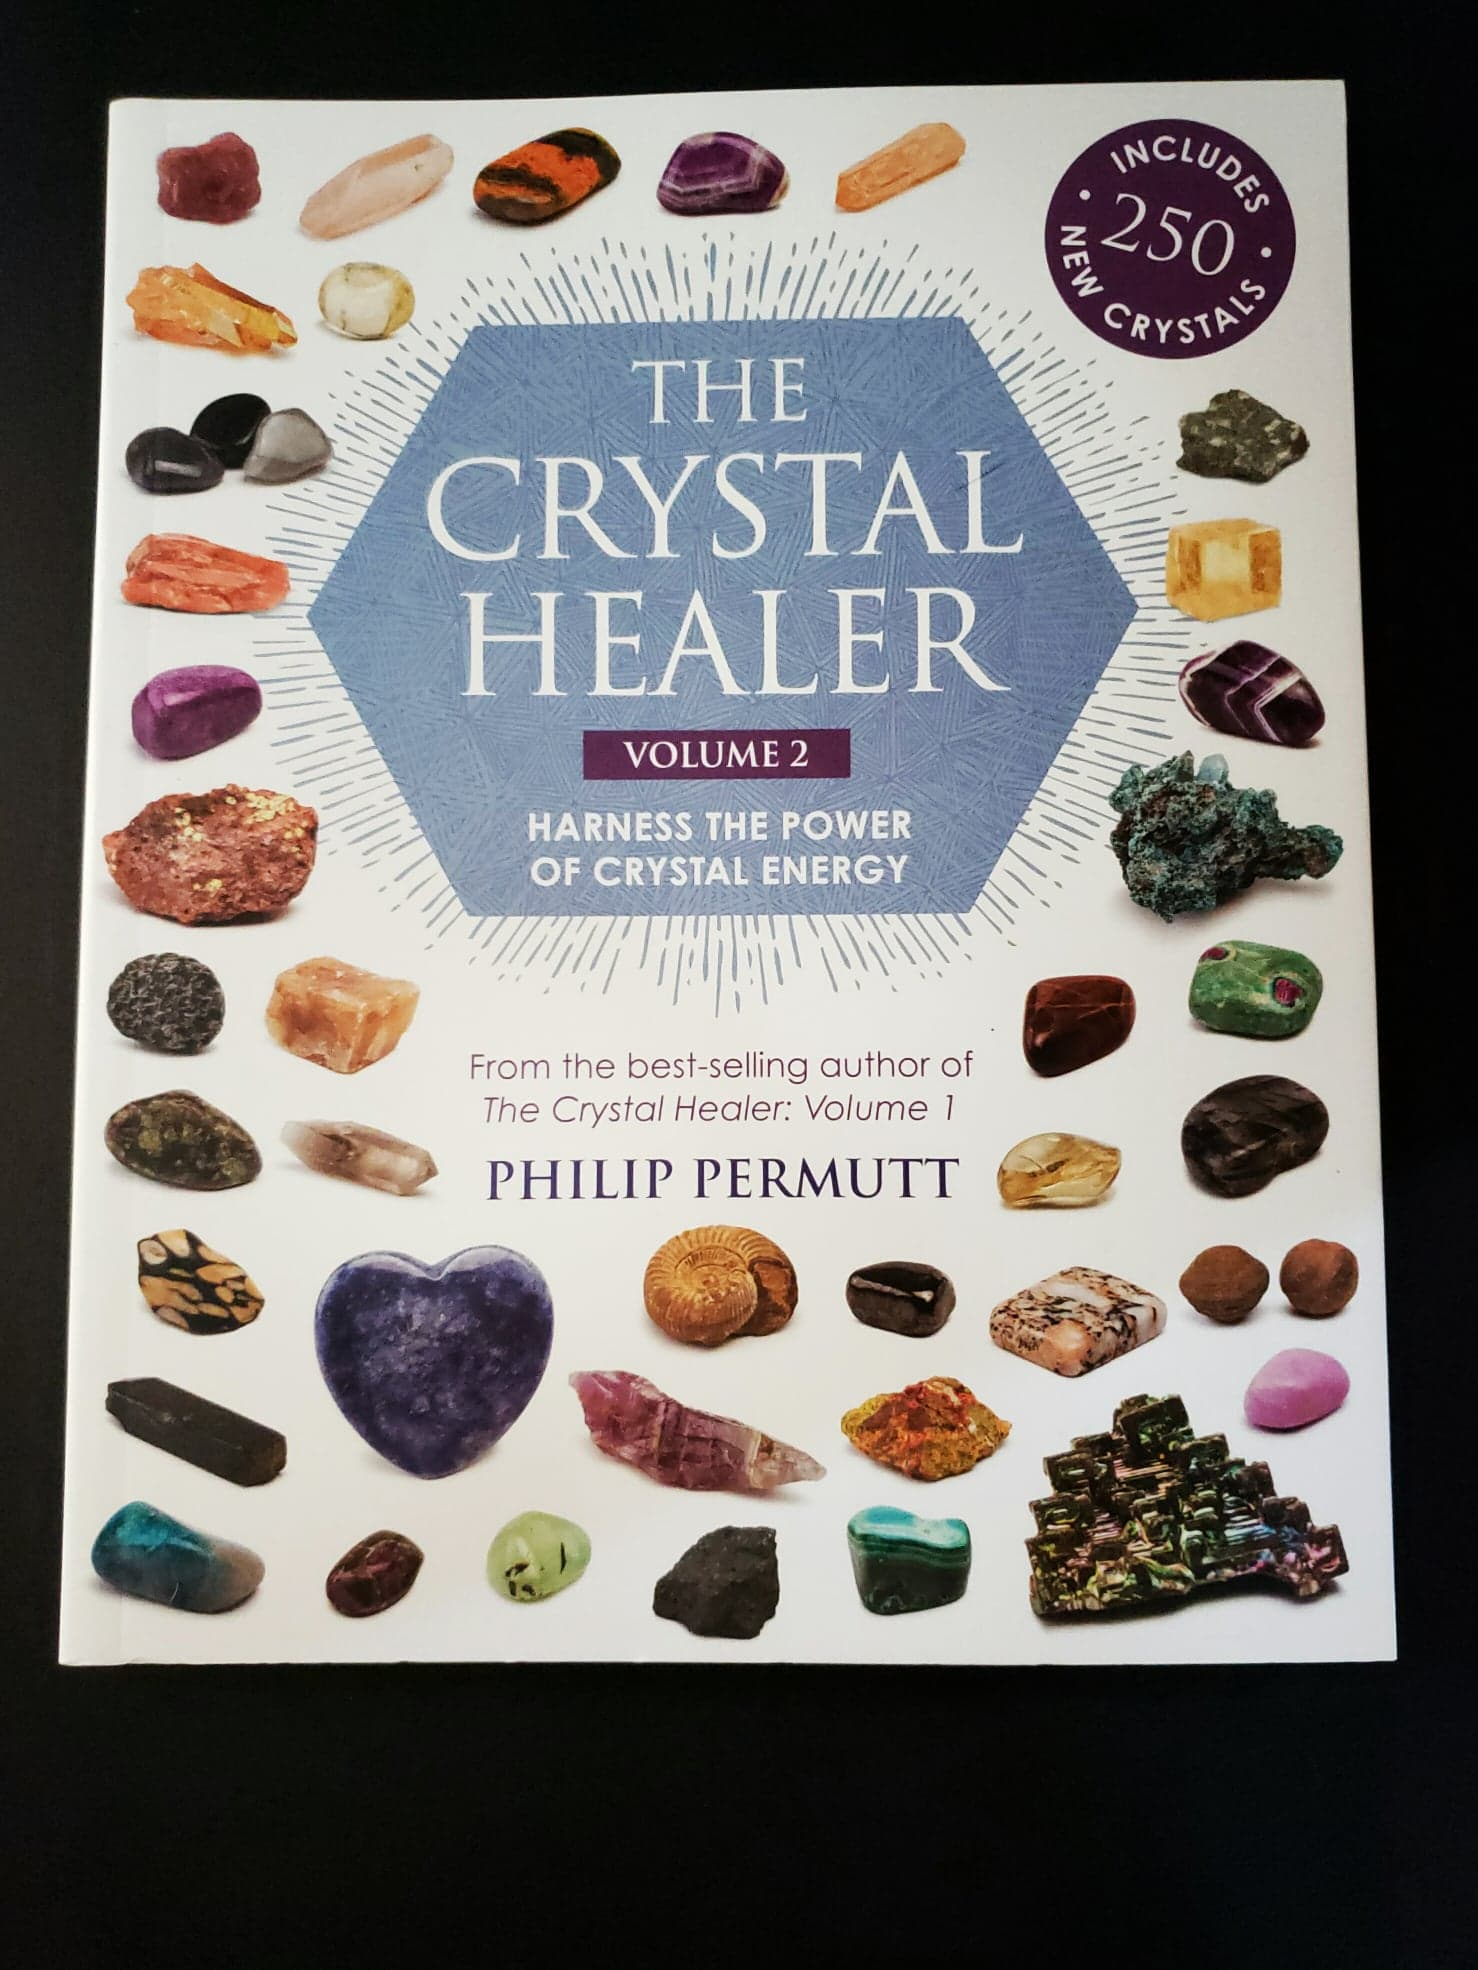 The Crystal Healer Vol. 2 By Philip Permutt